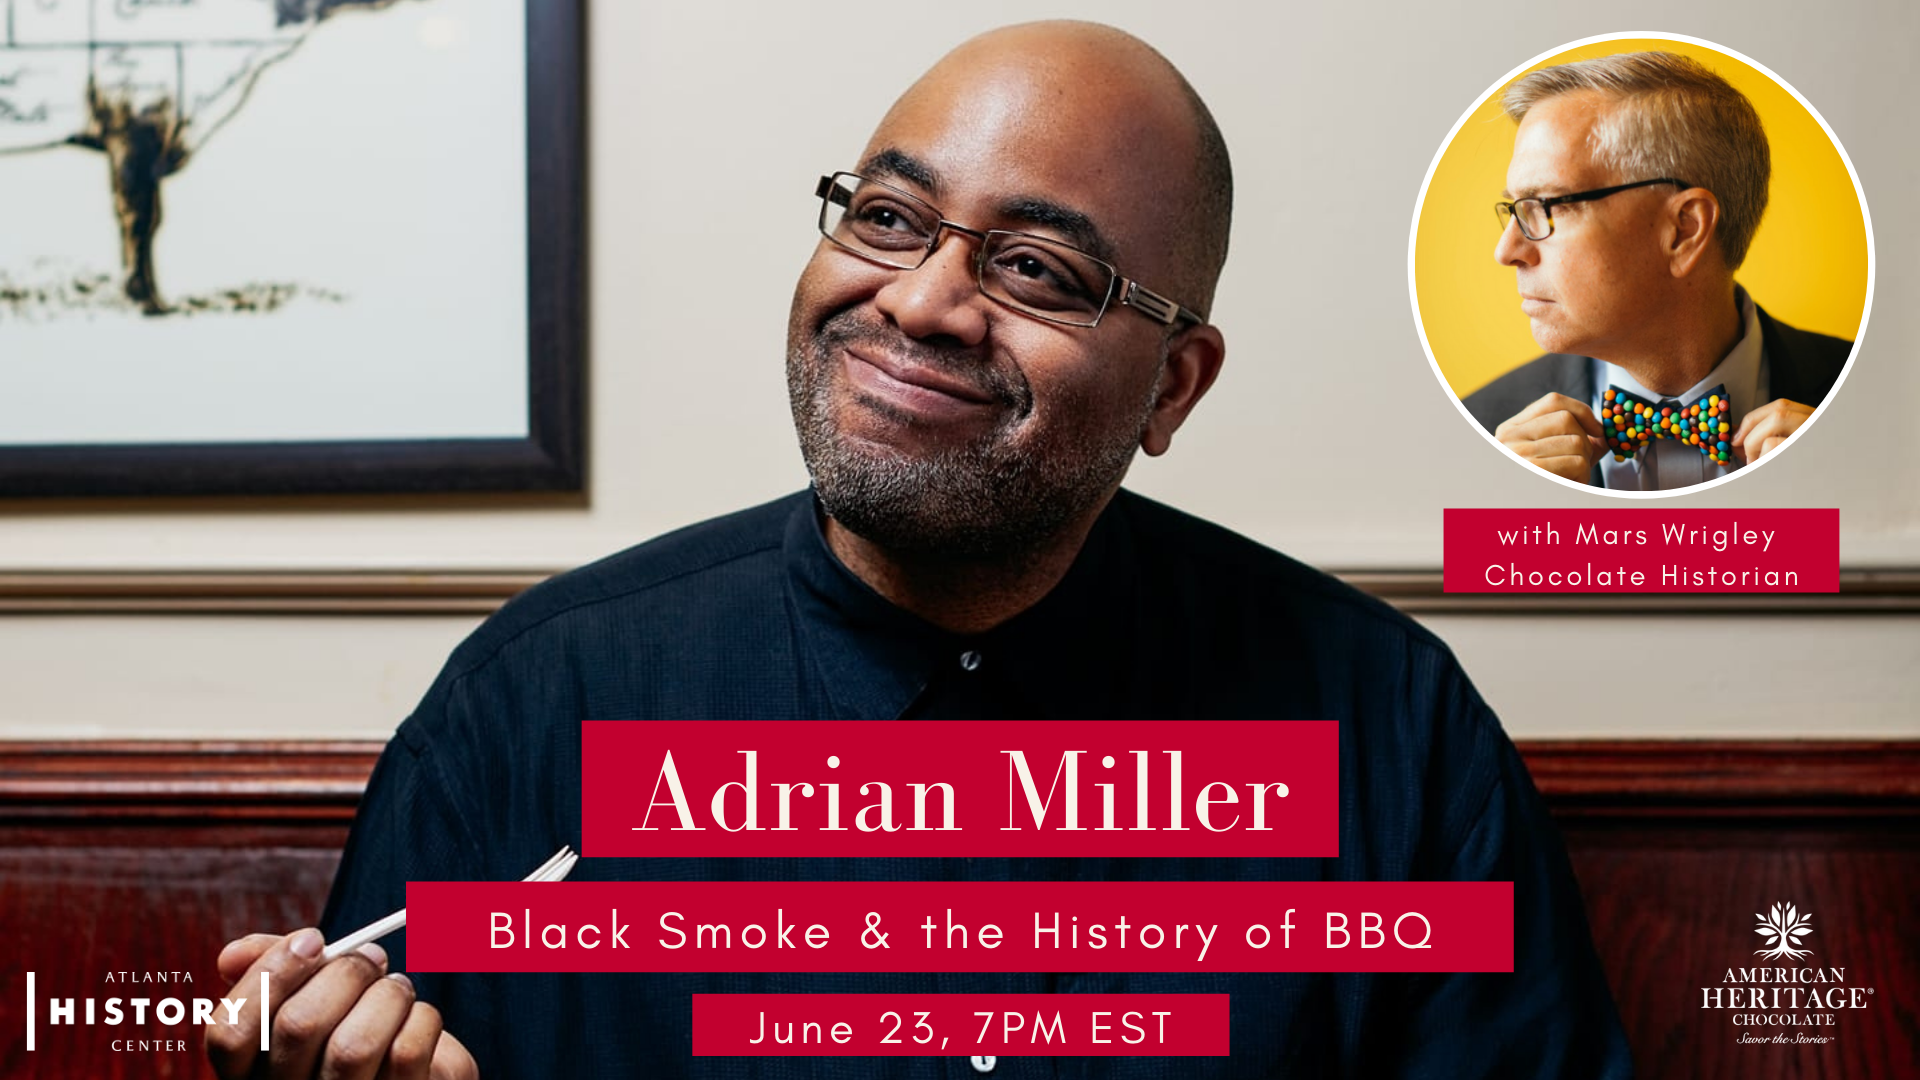 Black Smoke and the History of Barbecue with Adrian Miller